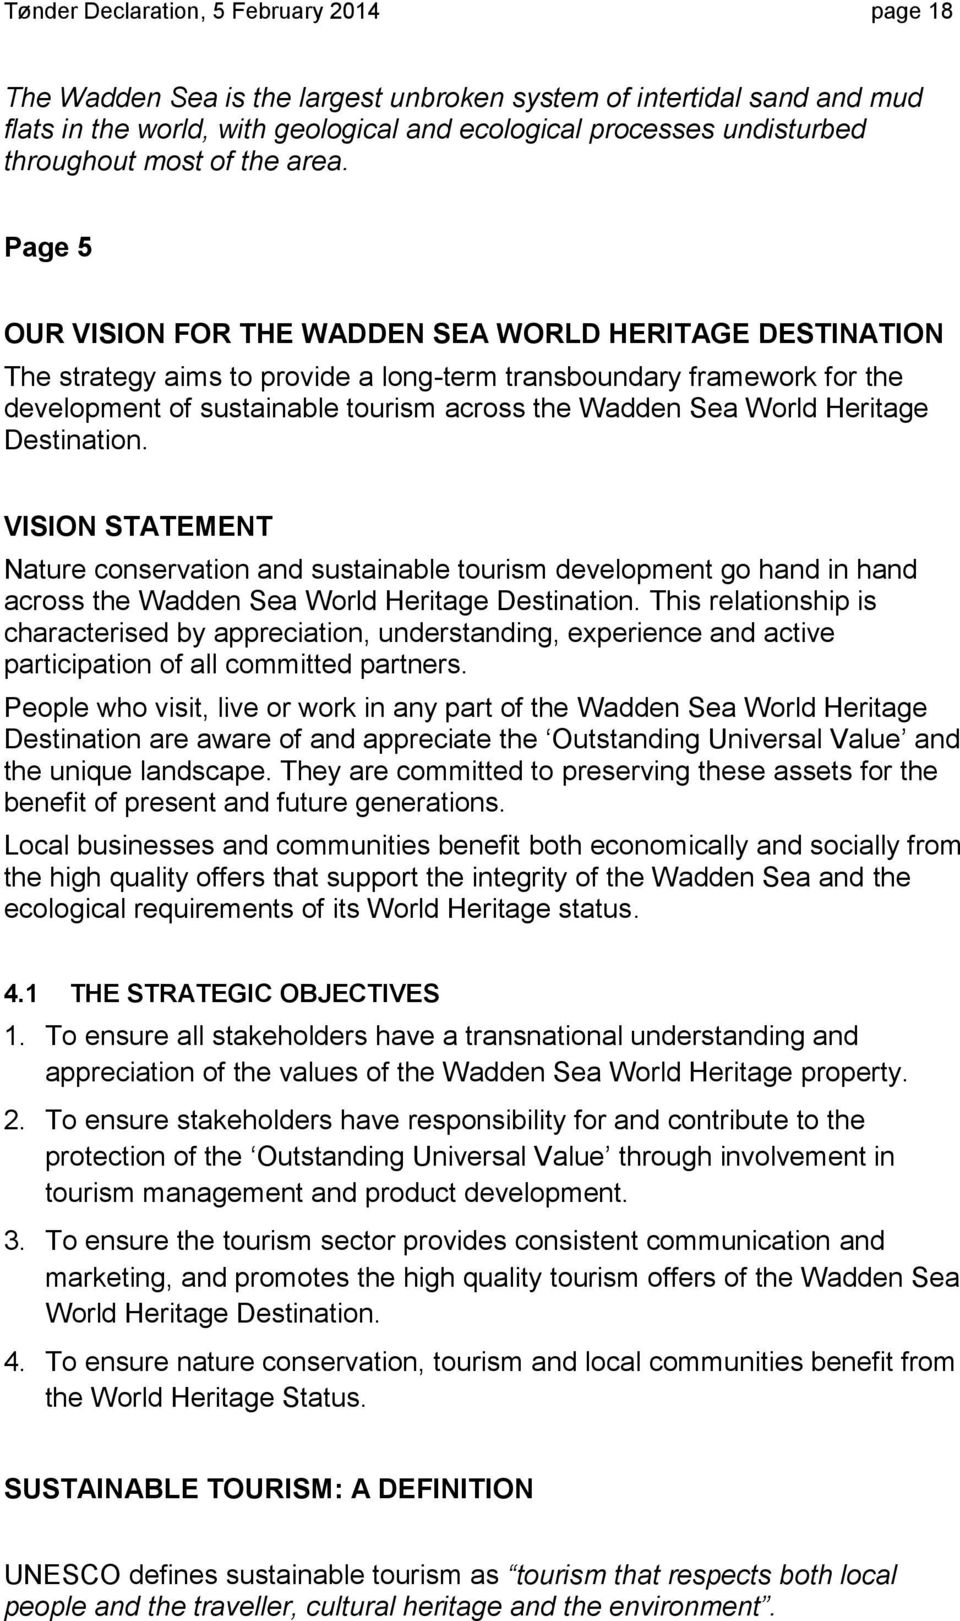 Page 5 OUR VISION FOR THE WADDEN SEA WORLD HERITAGE DESTINATION The strategy aims to provide a long-term transboundary framework for the development of sustainable tourism across the Wadden Sea World